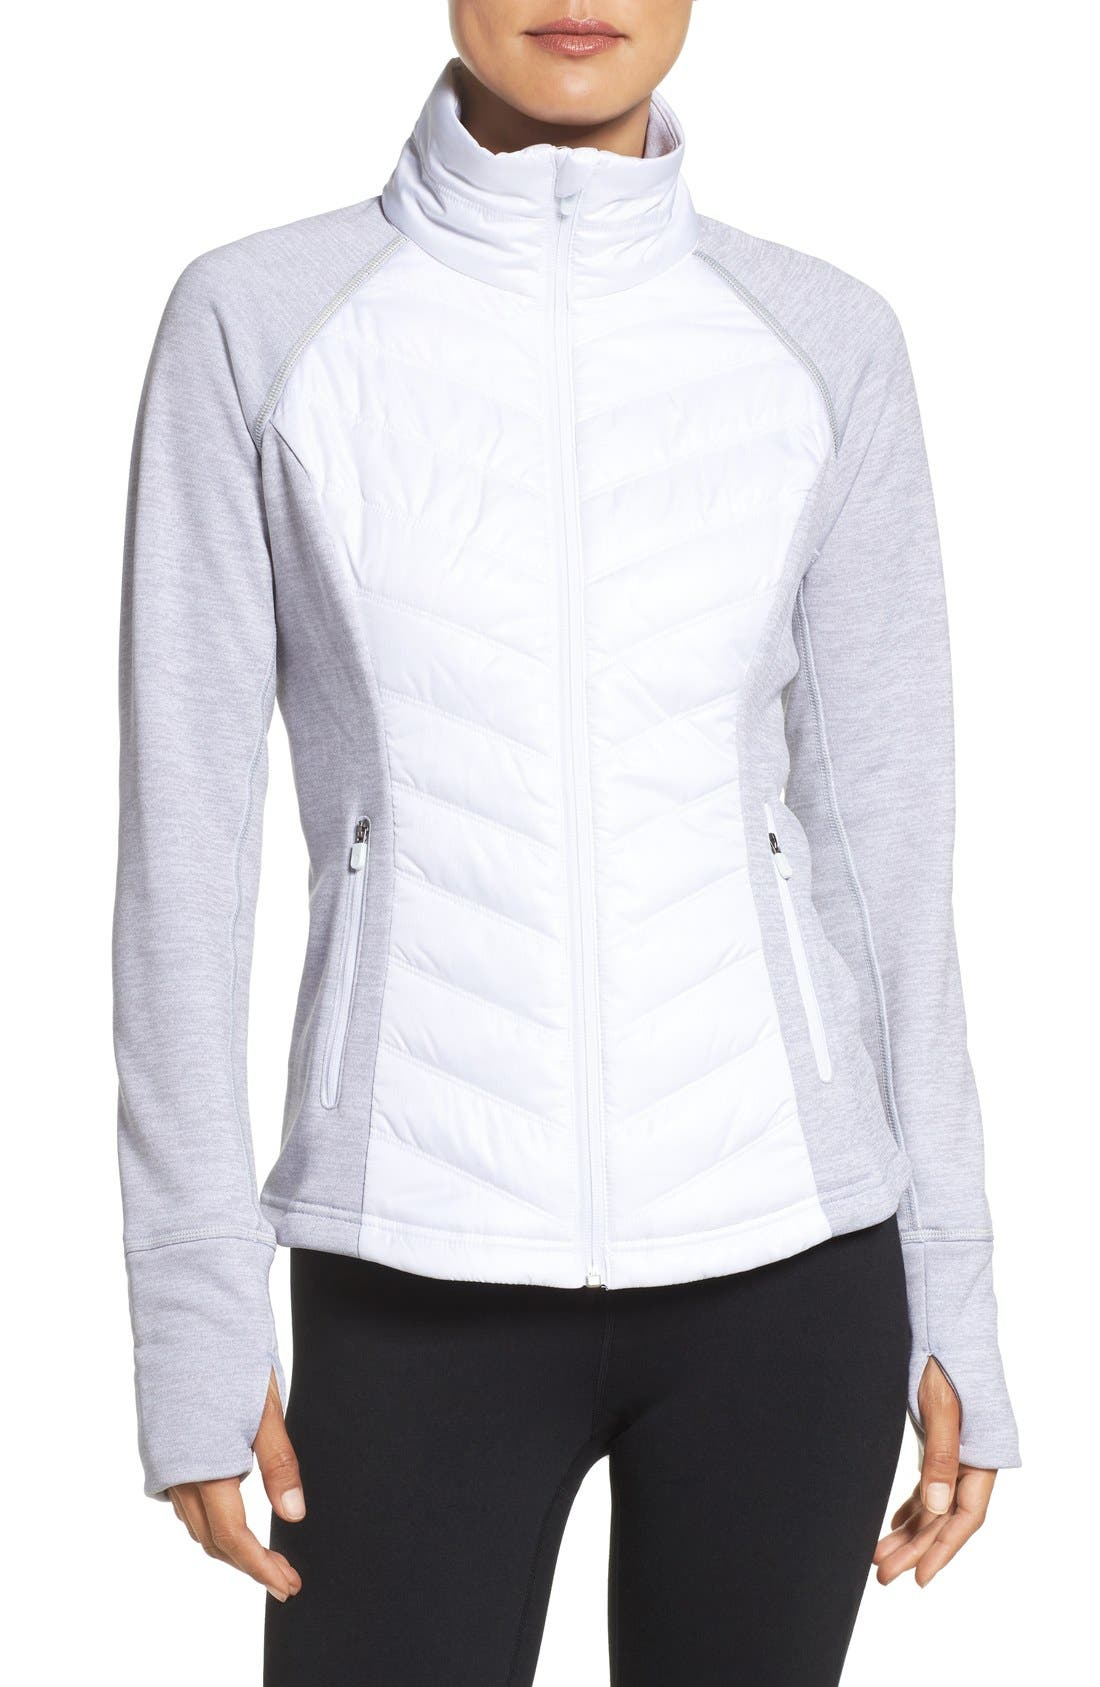 Zelfusion Reflective Quilted Jacket,                         Main,                         color, White Snow